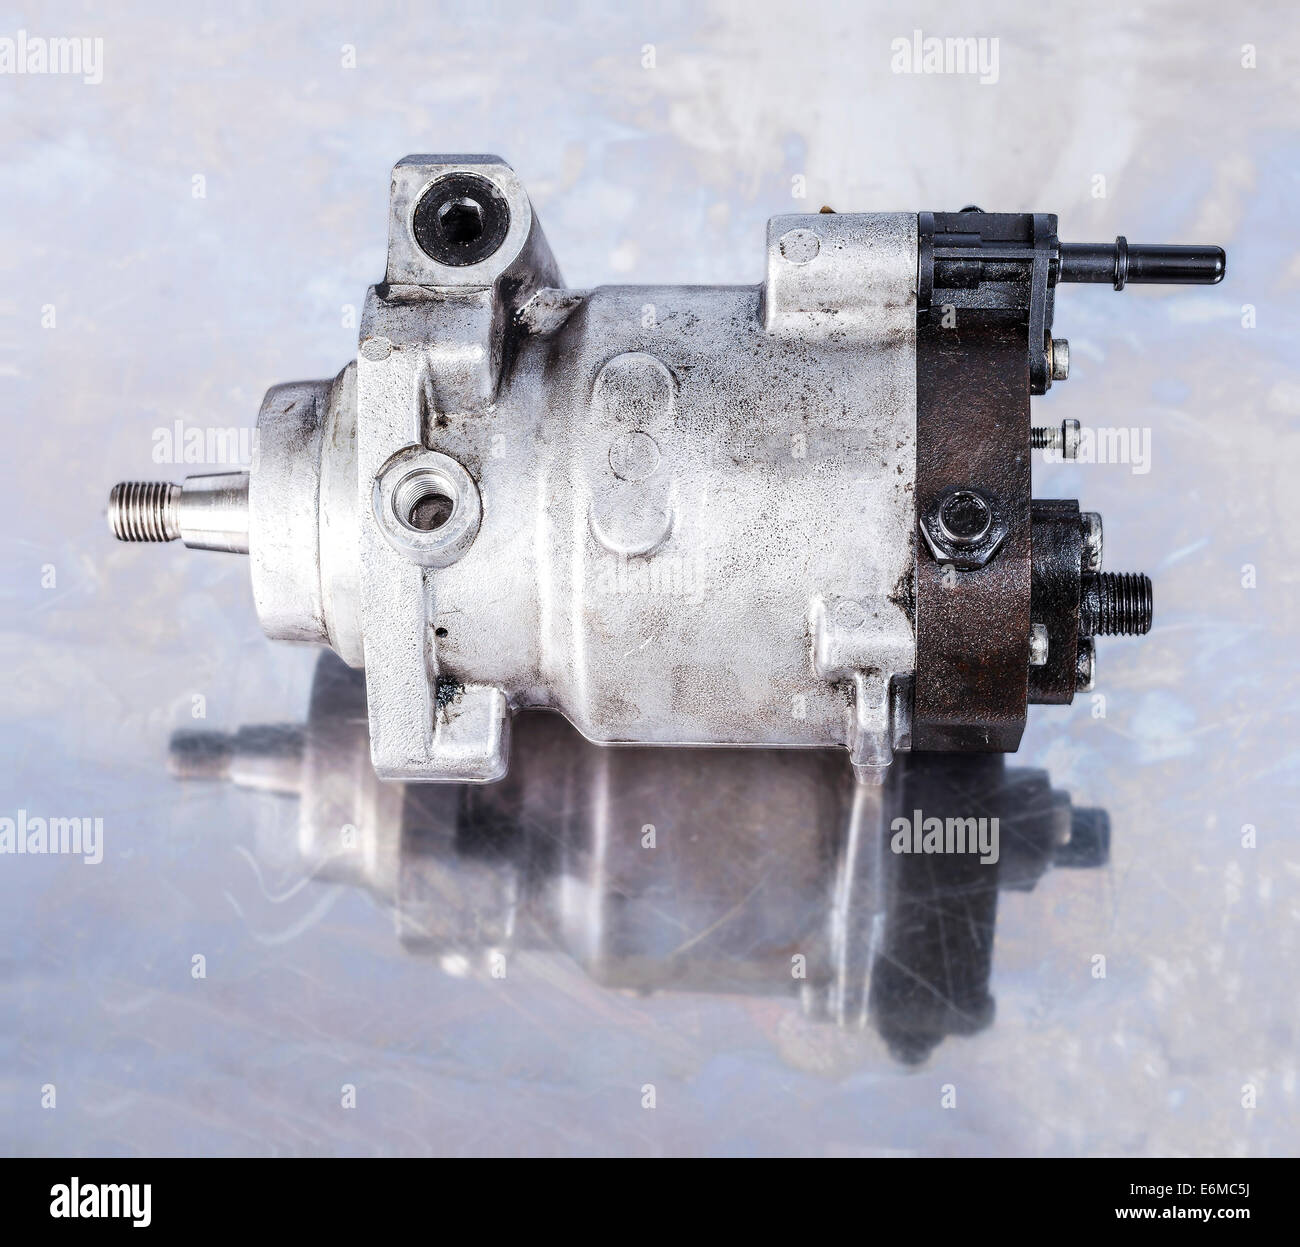 Fuel Injection Pump Stock Photo